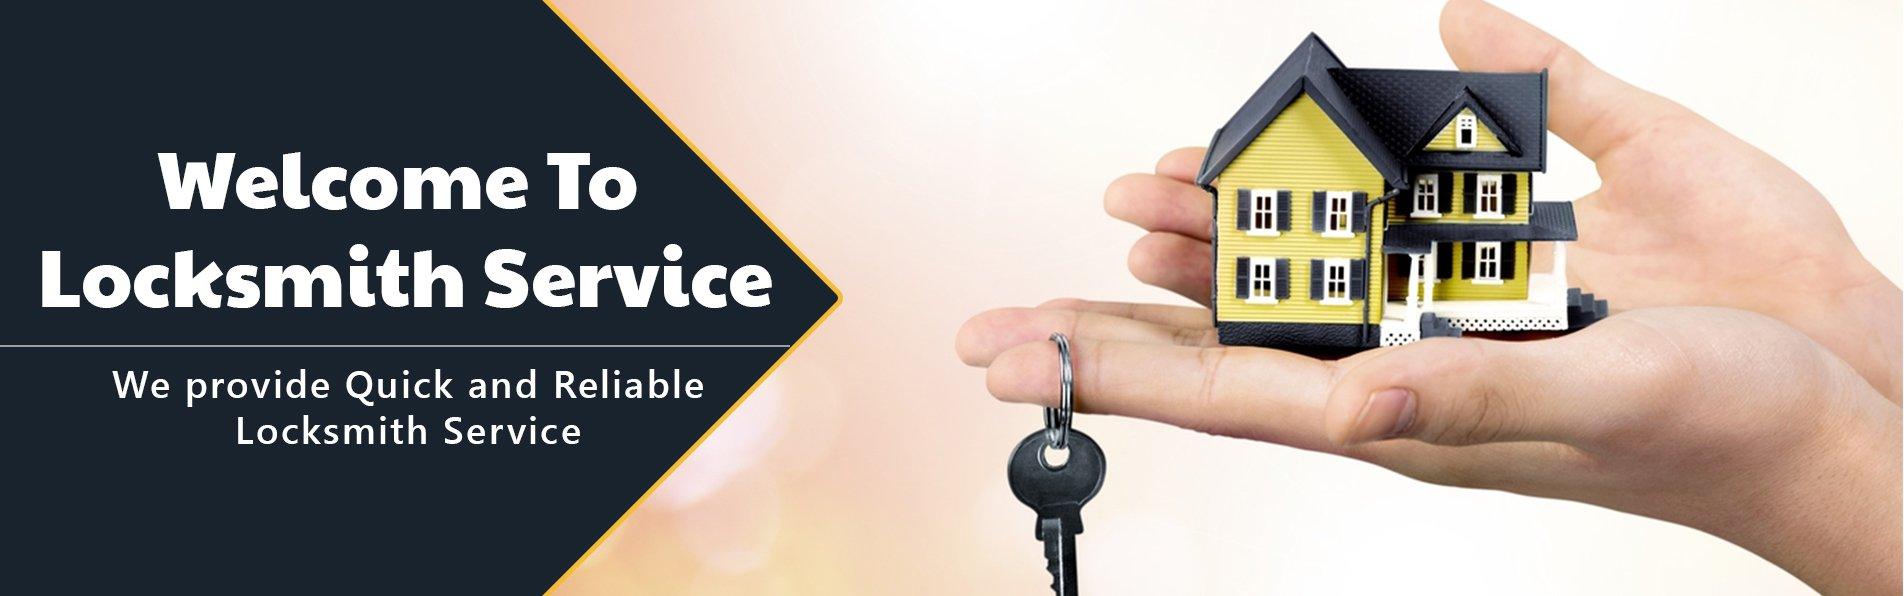 Maywood Locksmith Service, Maywood, IL 708-290-9001